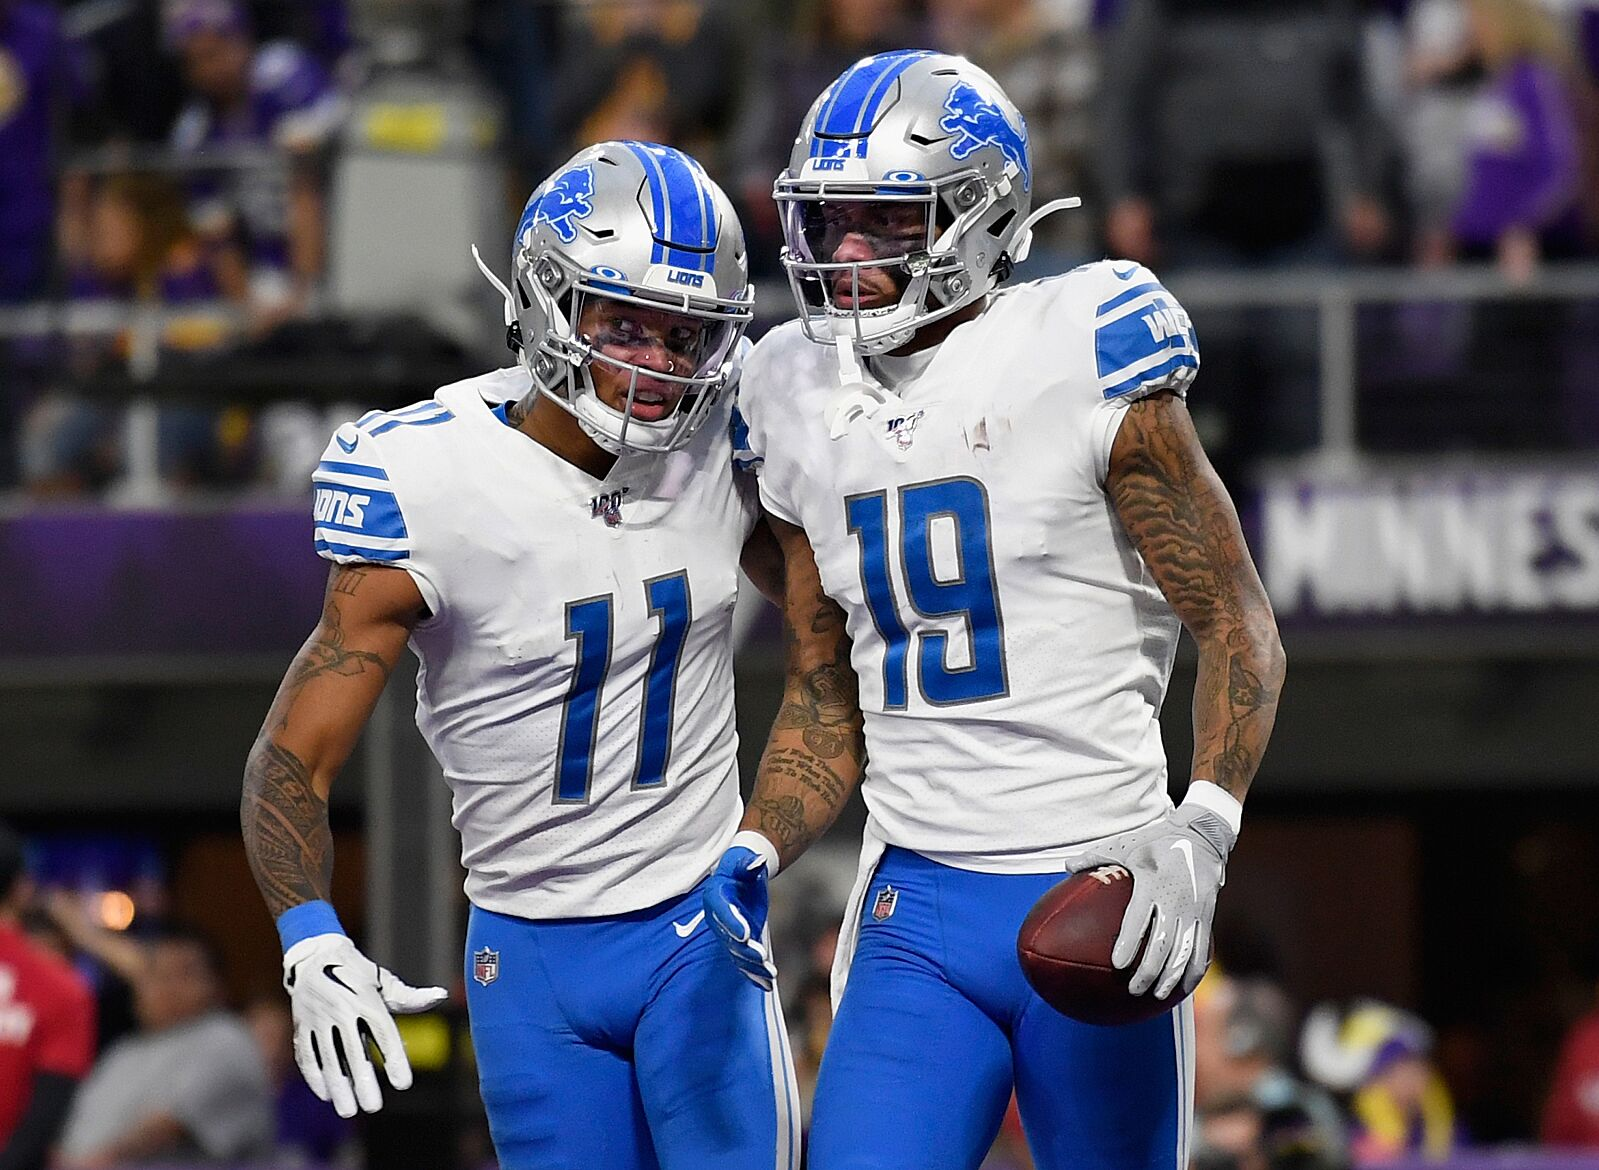 Lions vs. Buccaneers: 4 numbers you should know before Sunday